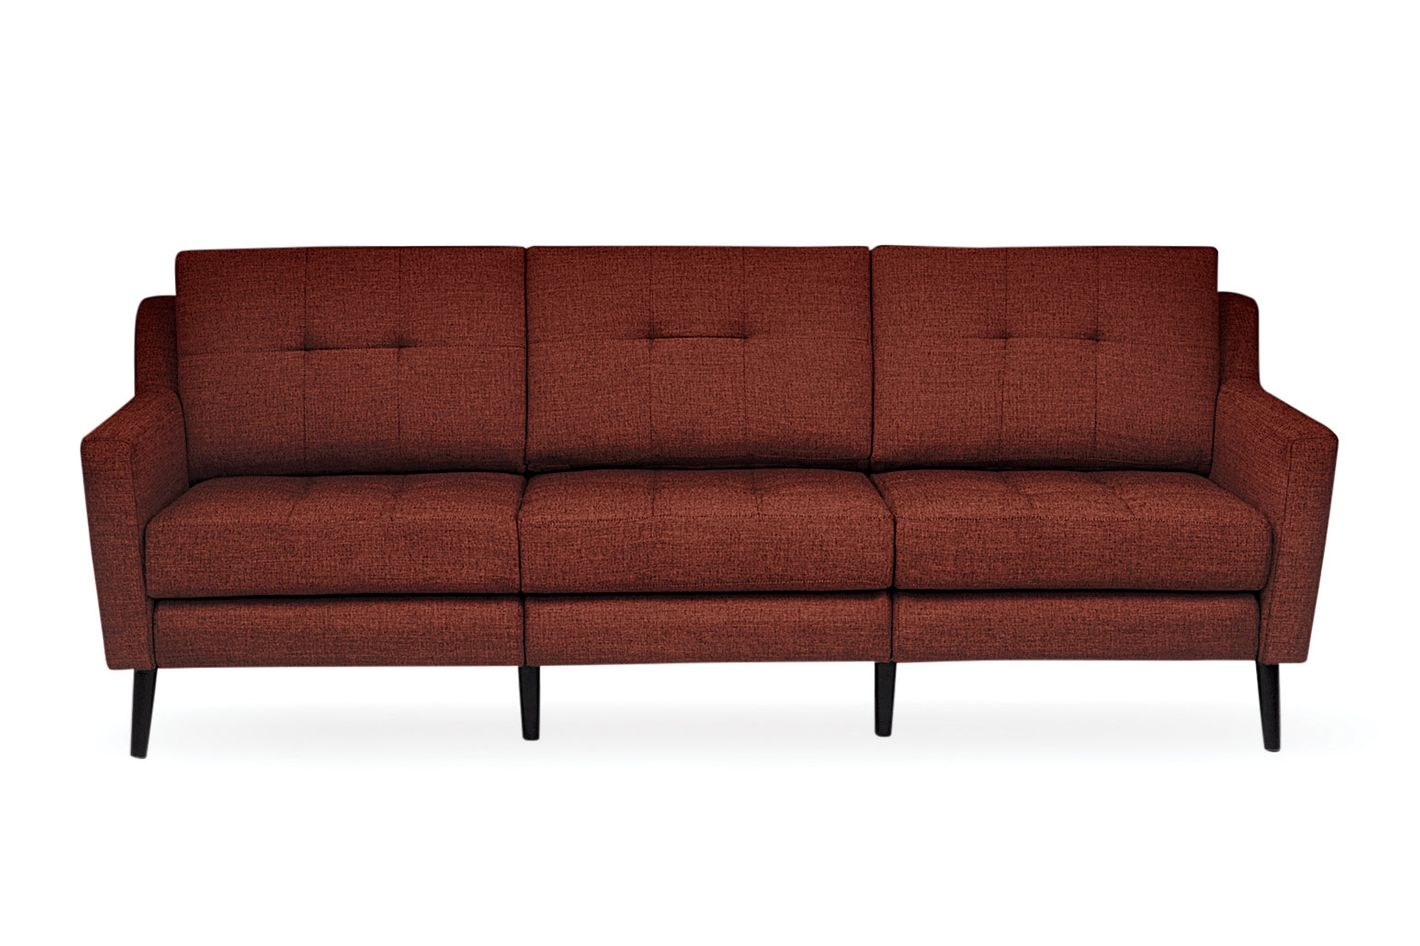 Burrow Nomad Sofa